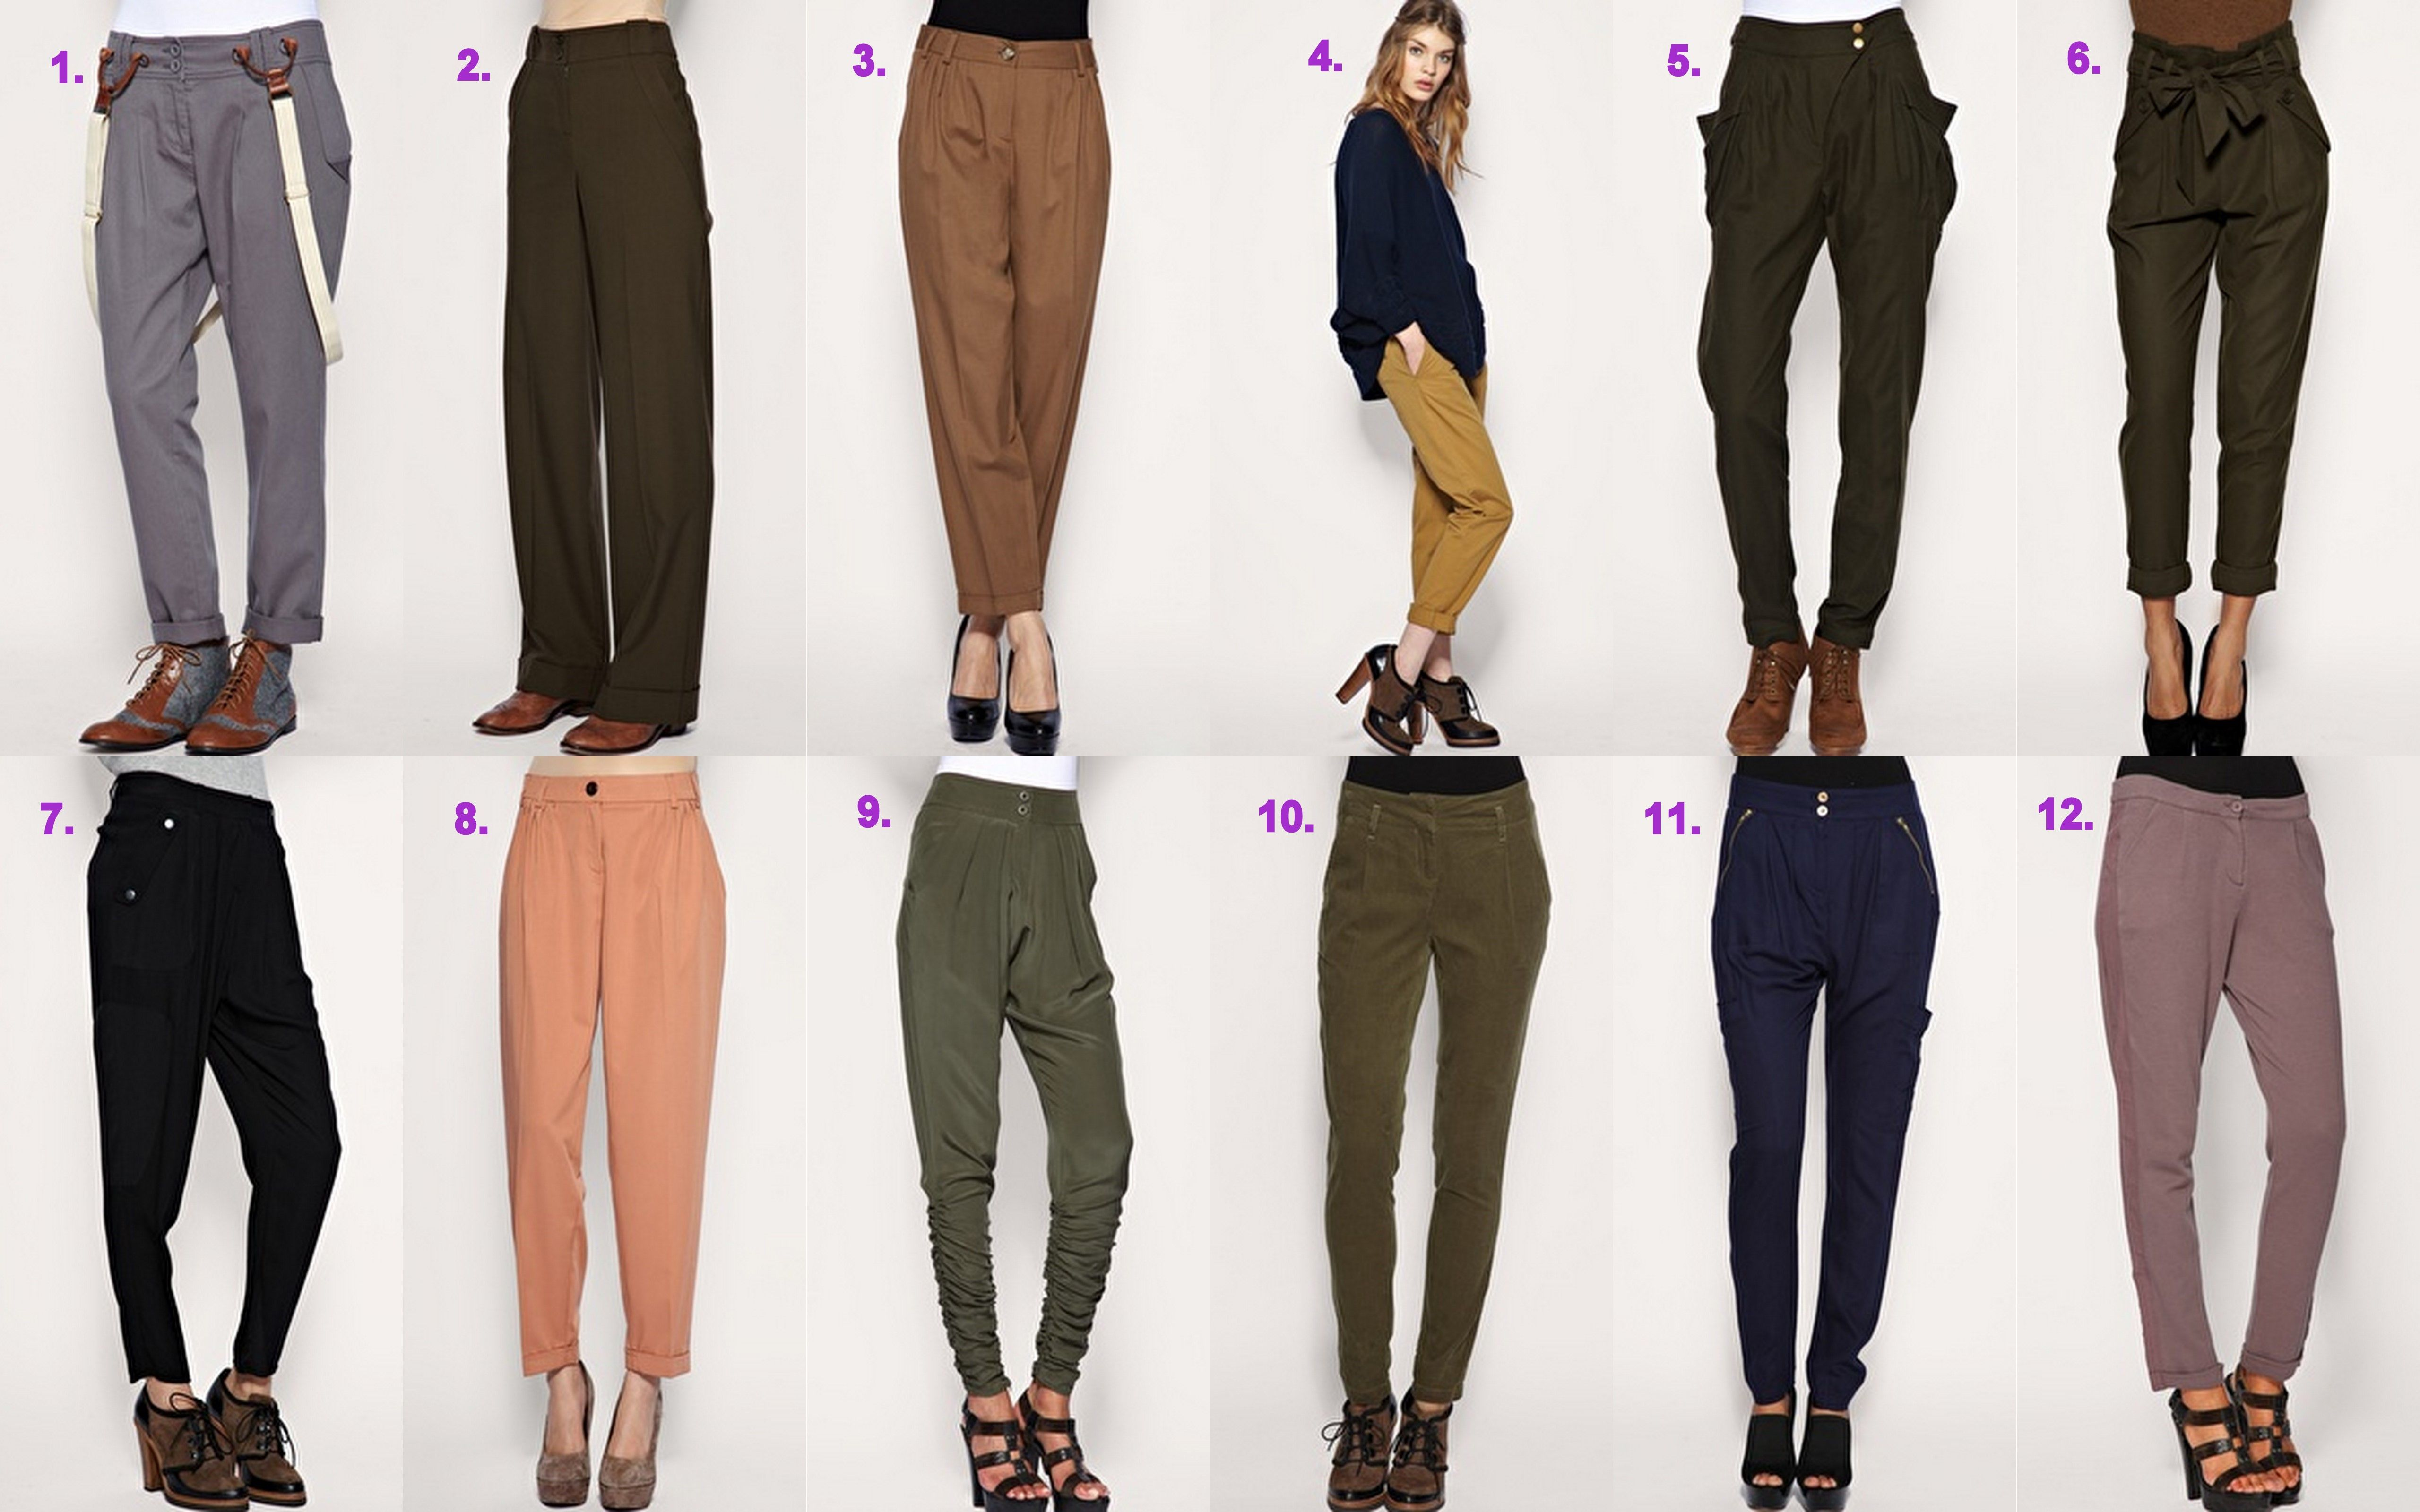 You searched for: women peg leg pants! Etsy is the home to thousands of handmade, vintage, and one-of-a-kind products and gifts related to your search. No matter what you're looking for or where you are in the world, our global marketplace of sellers can help you find unique and affordable options.